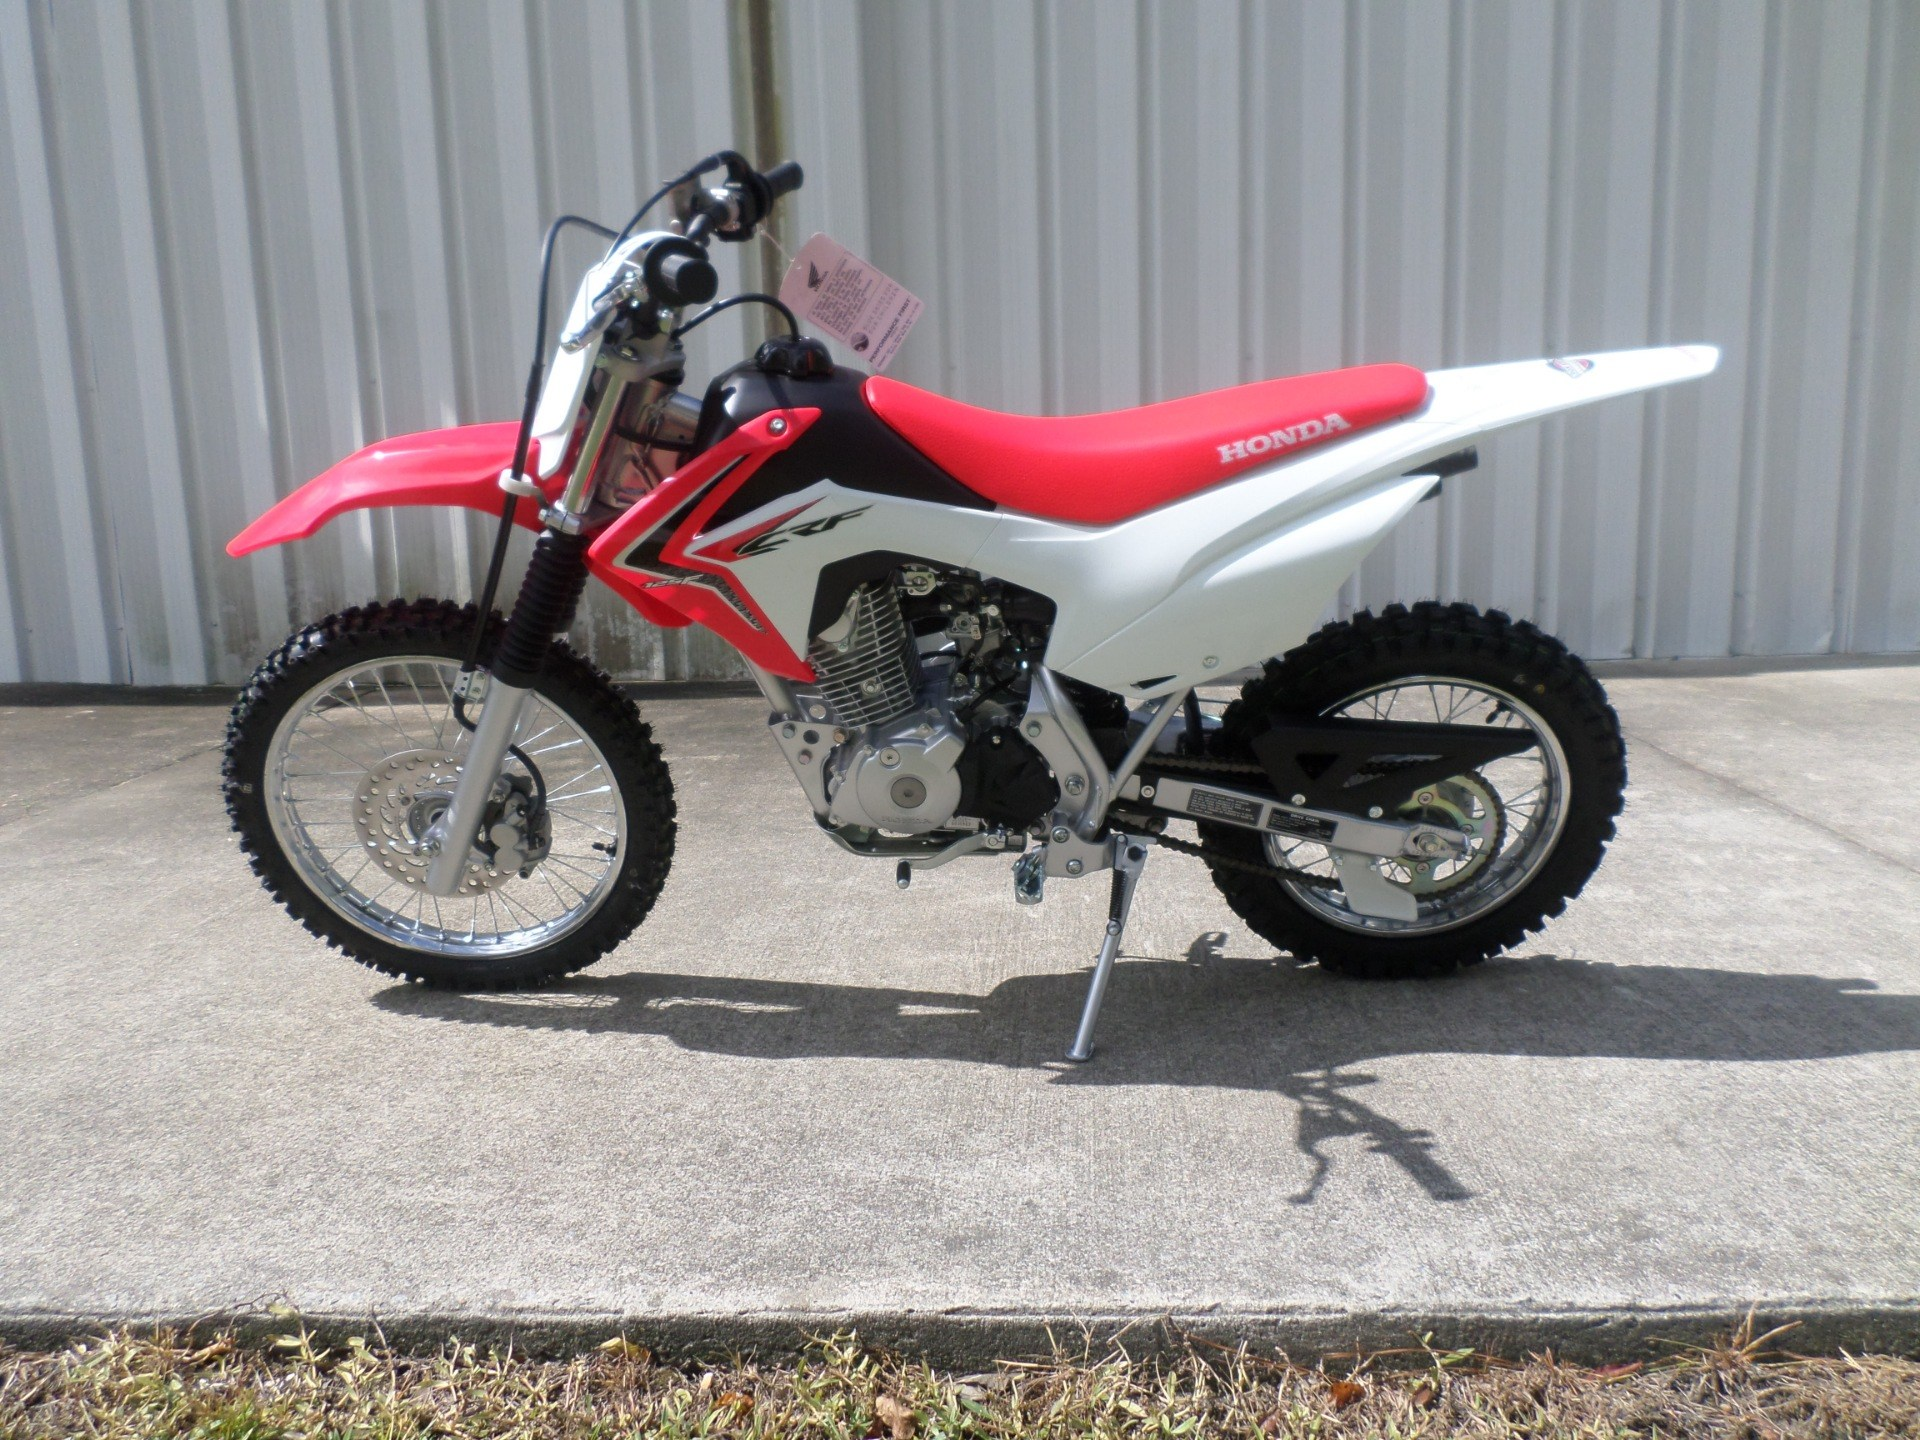 new 2017 honda crf125f motorcycles in greenville, nc   stock